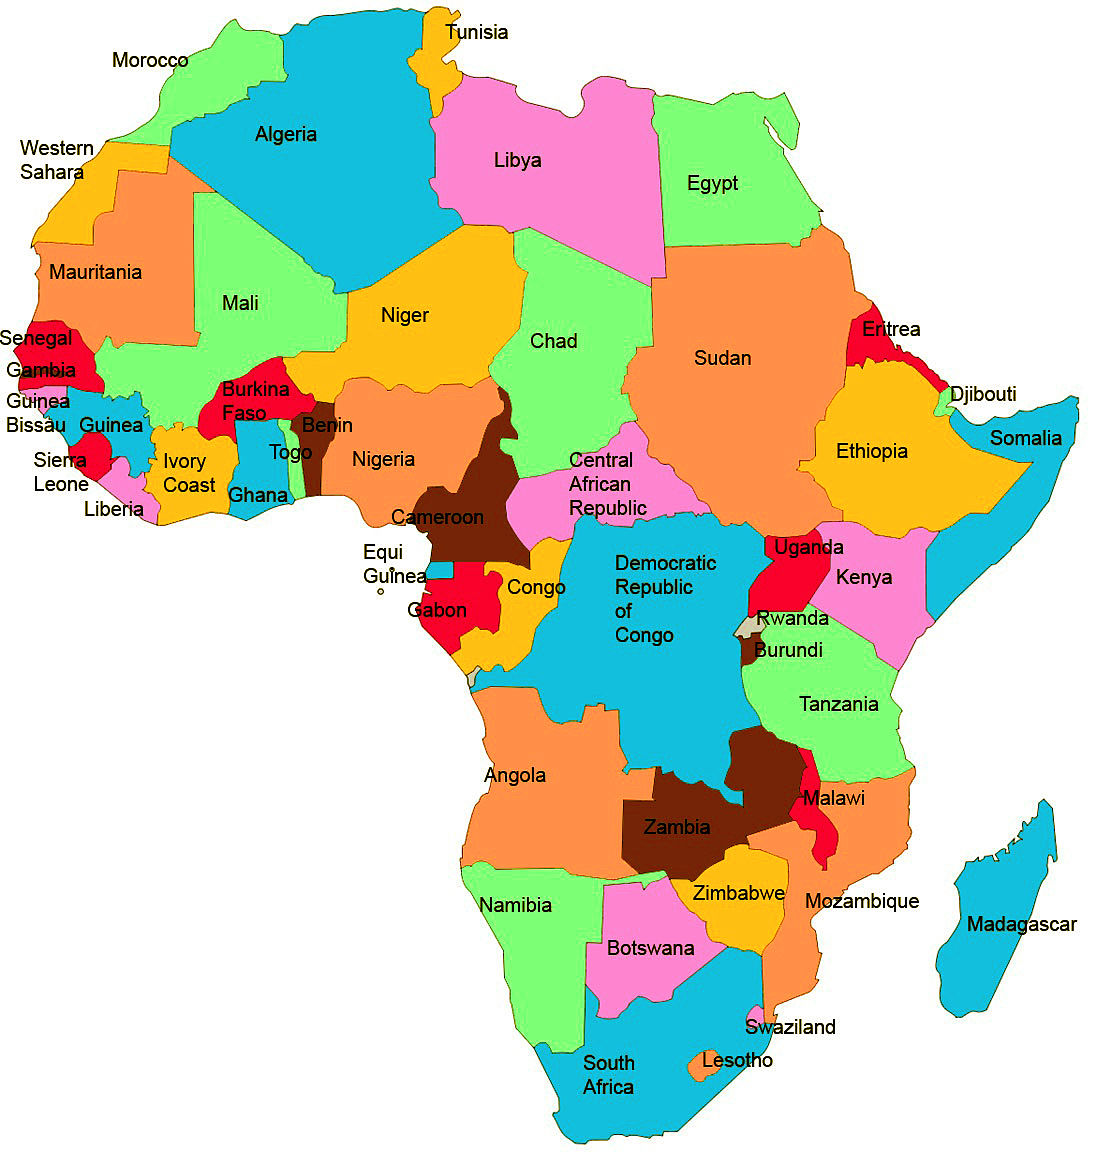 Map Of Africa For Students.Africa Map For Students Jackenjuul